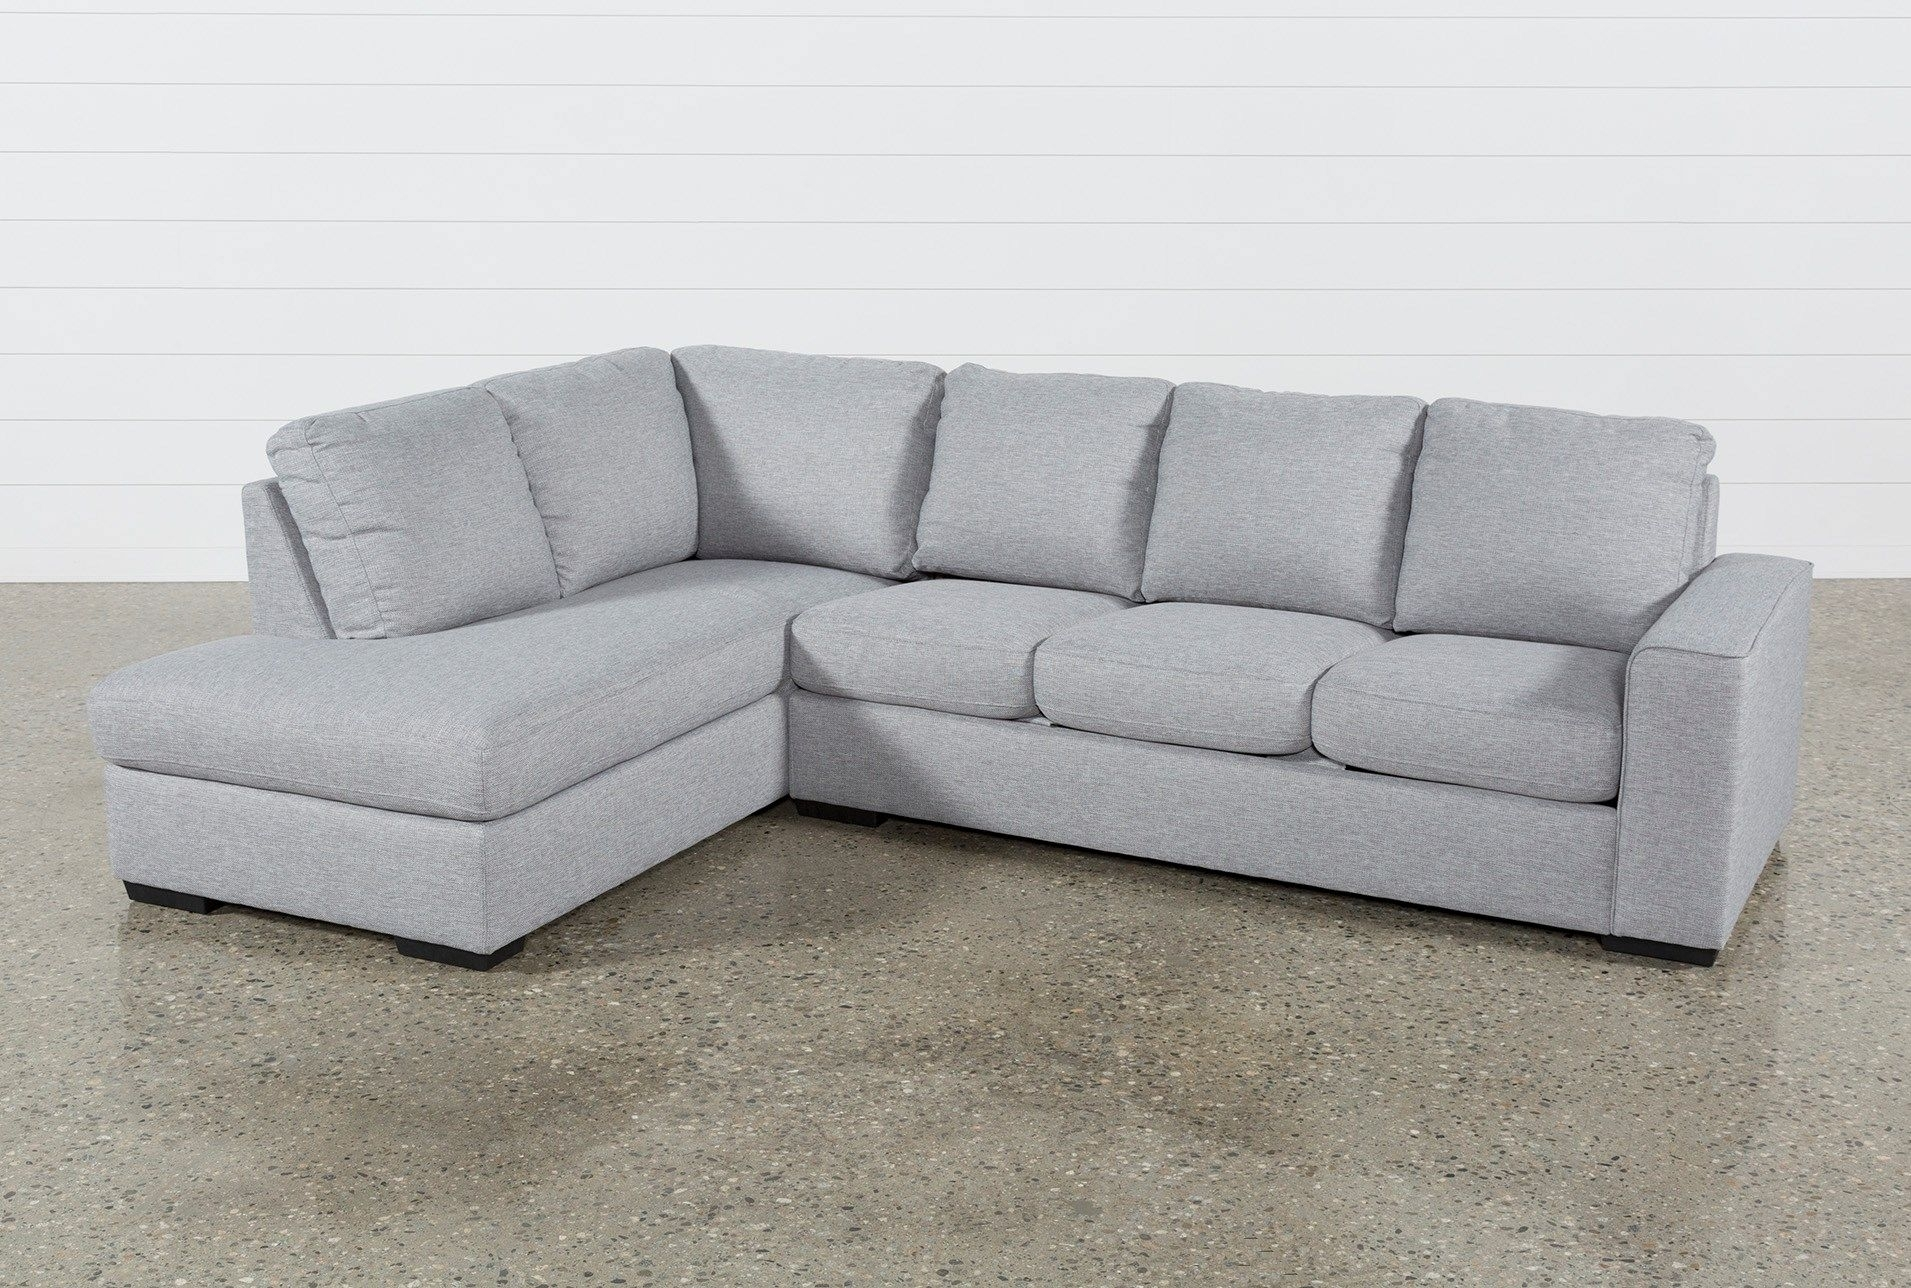 Lucy Grey 2 Piece Sectional W/laf Chaise | Tx House | Pinterest for Lucy Dark Grey 2 Piece Sleeper Sectionals With Laf Chaise (Image 17 of 30)